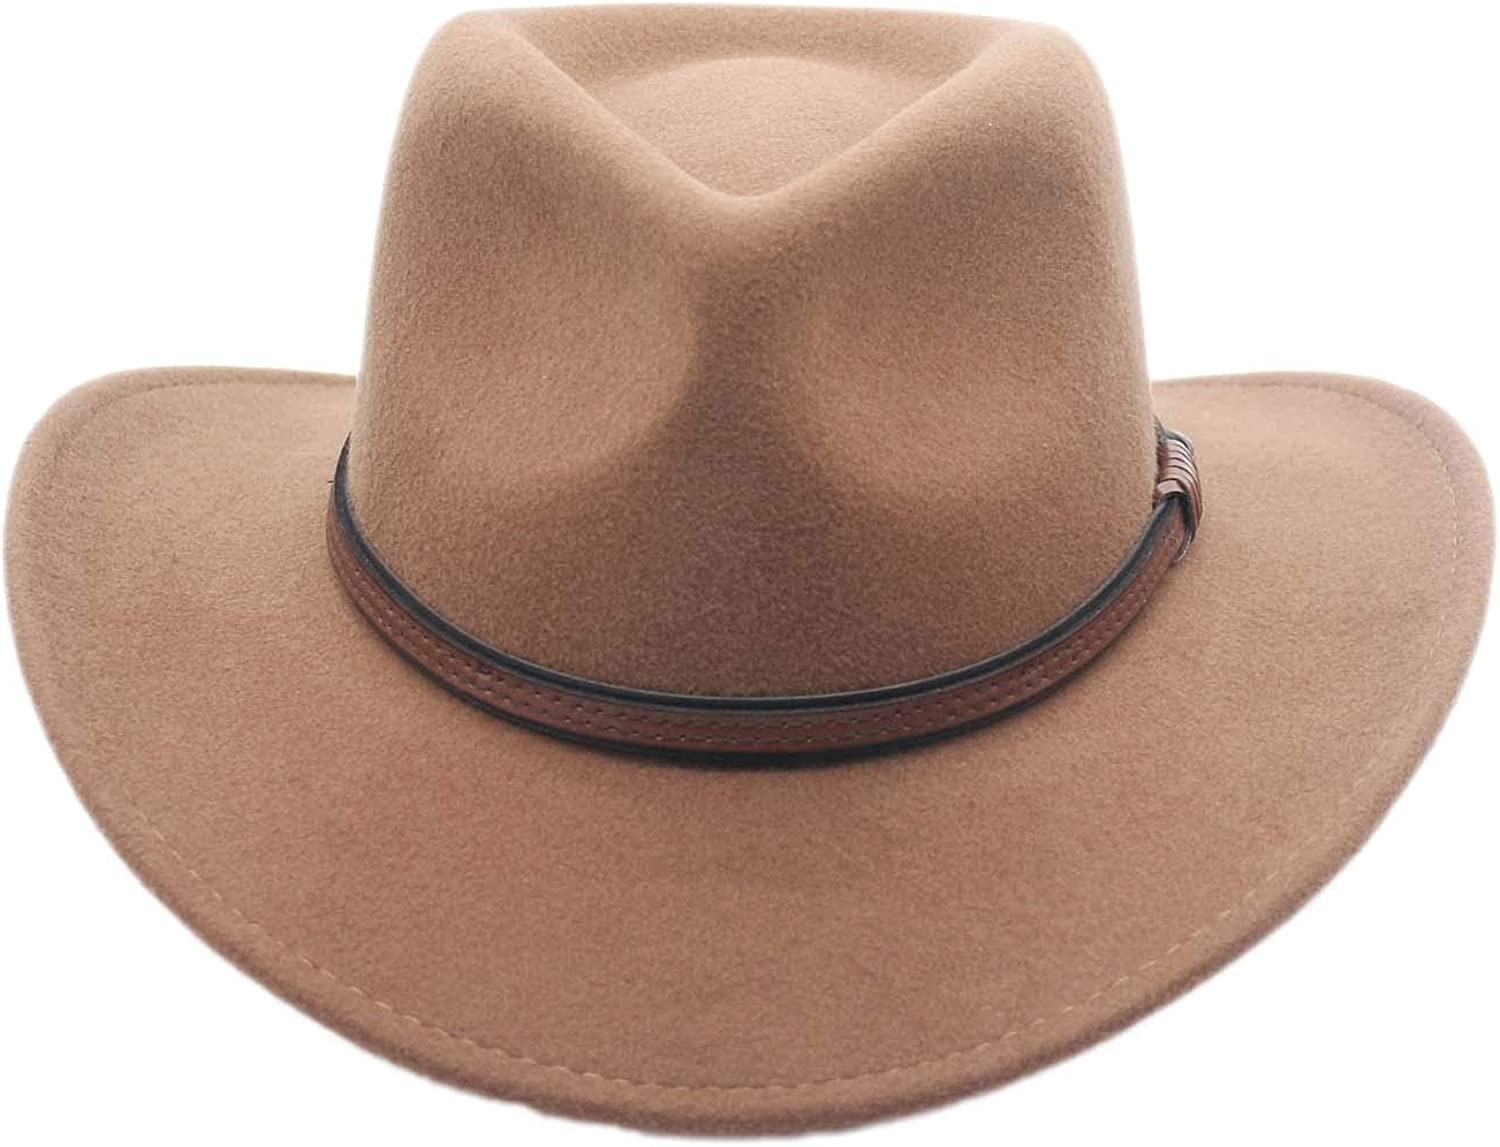 Silver Canyon Boot and Clothing Company Mens Outback Wool Cowboy Hat Bozeman Crushable Western